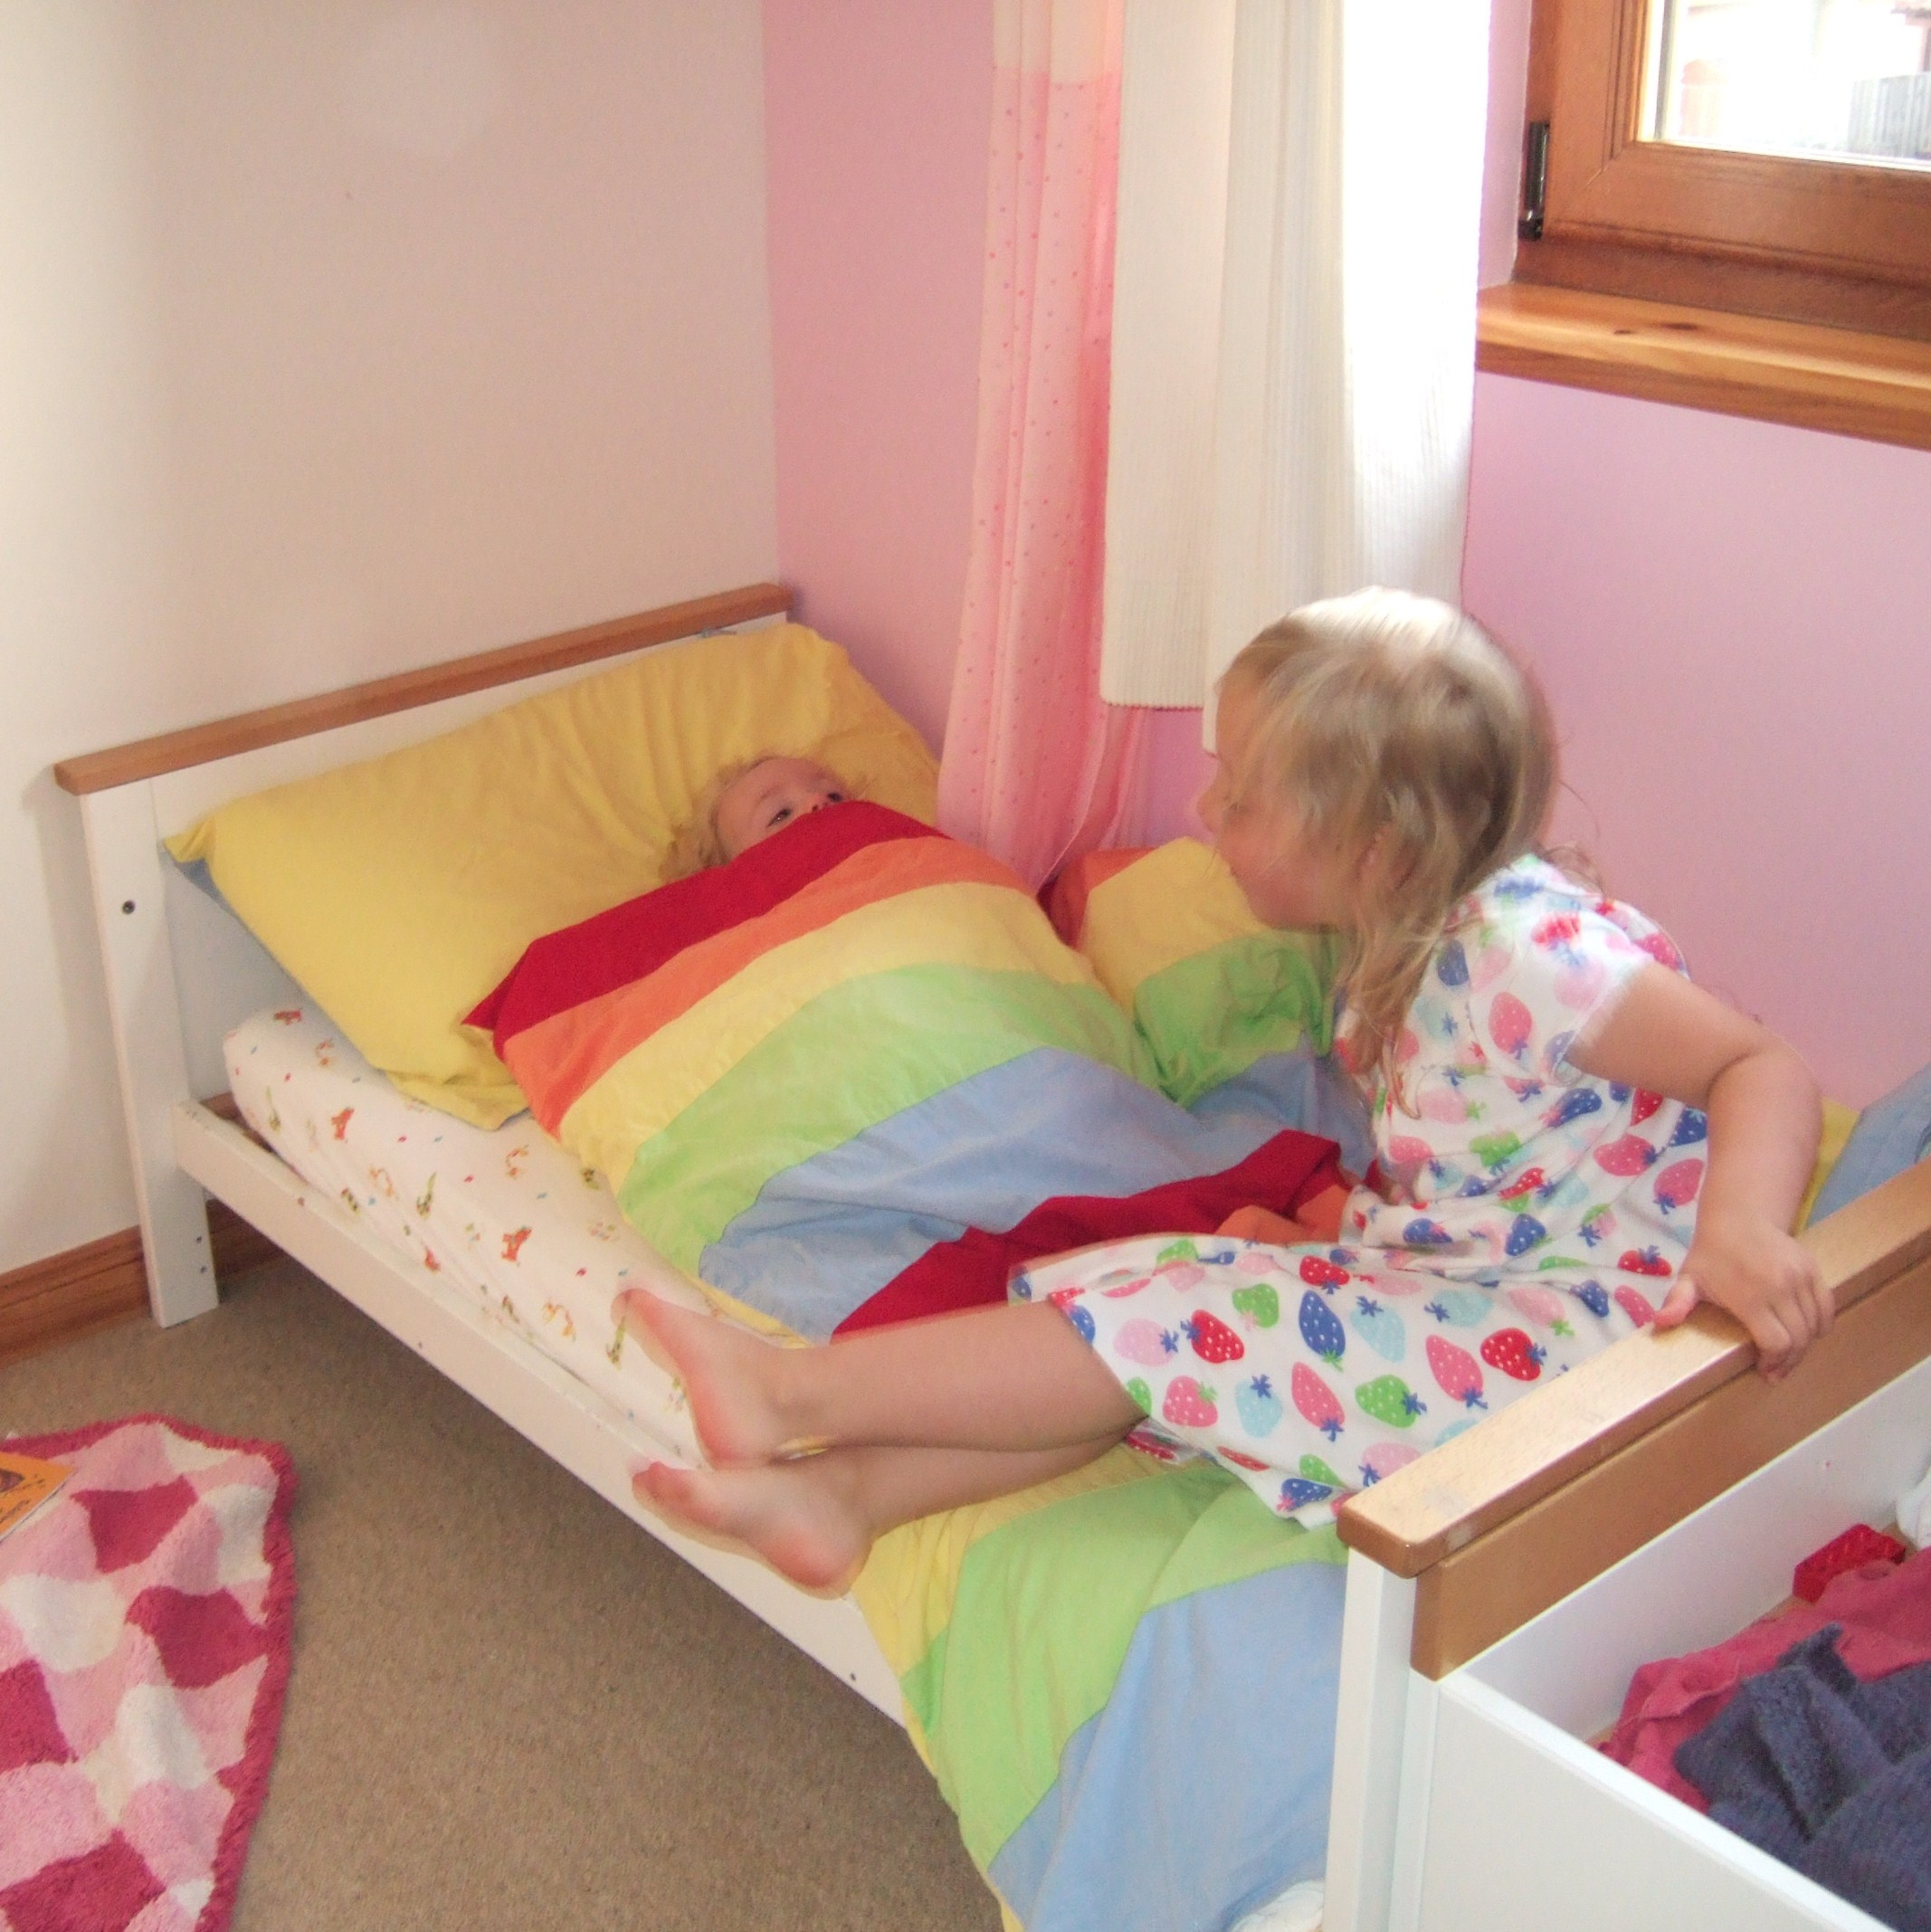 Big Girl Beds 28 Images Lulu Gets A Big Girl Bed And Has A Thing For Bieber Indy My Girls